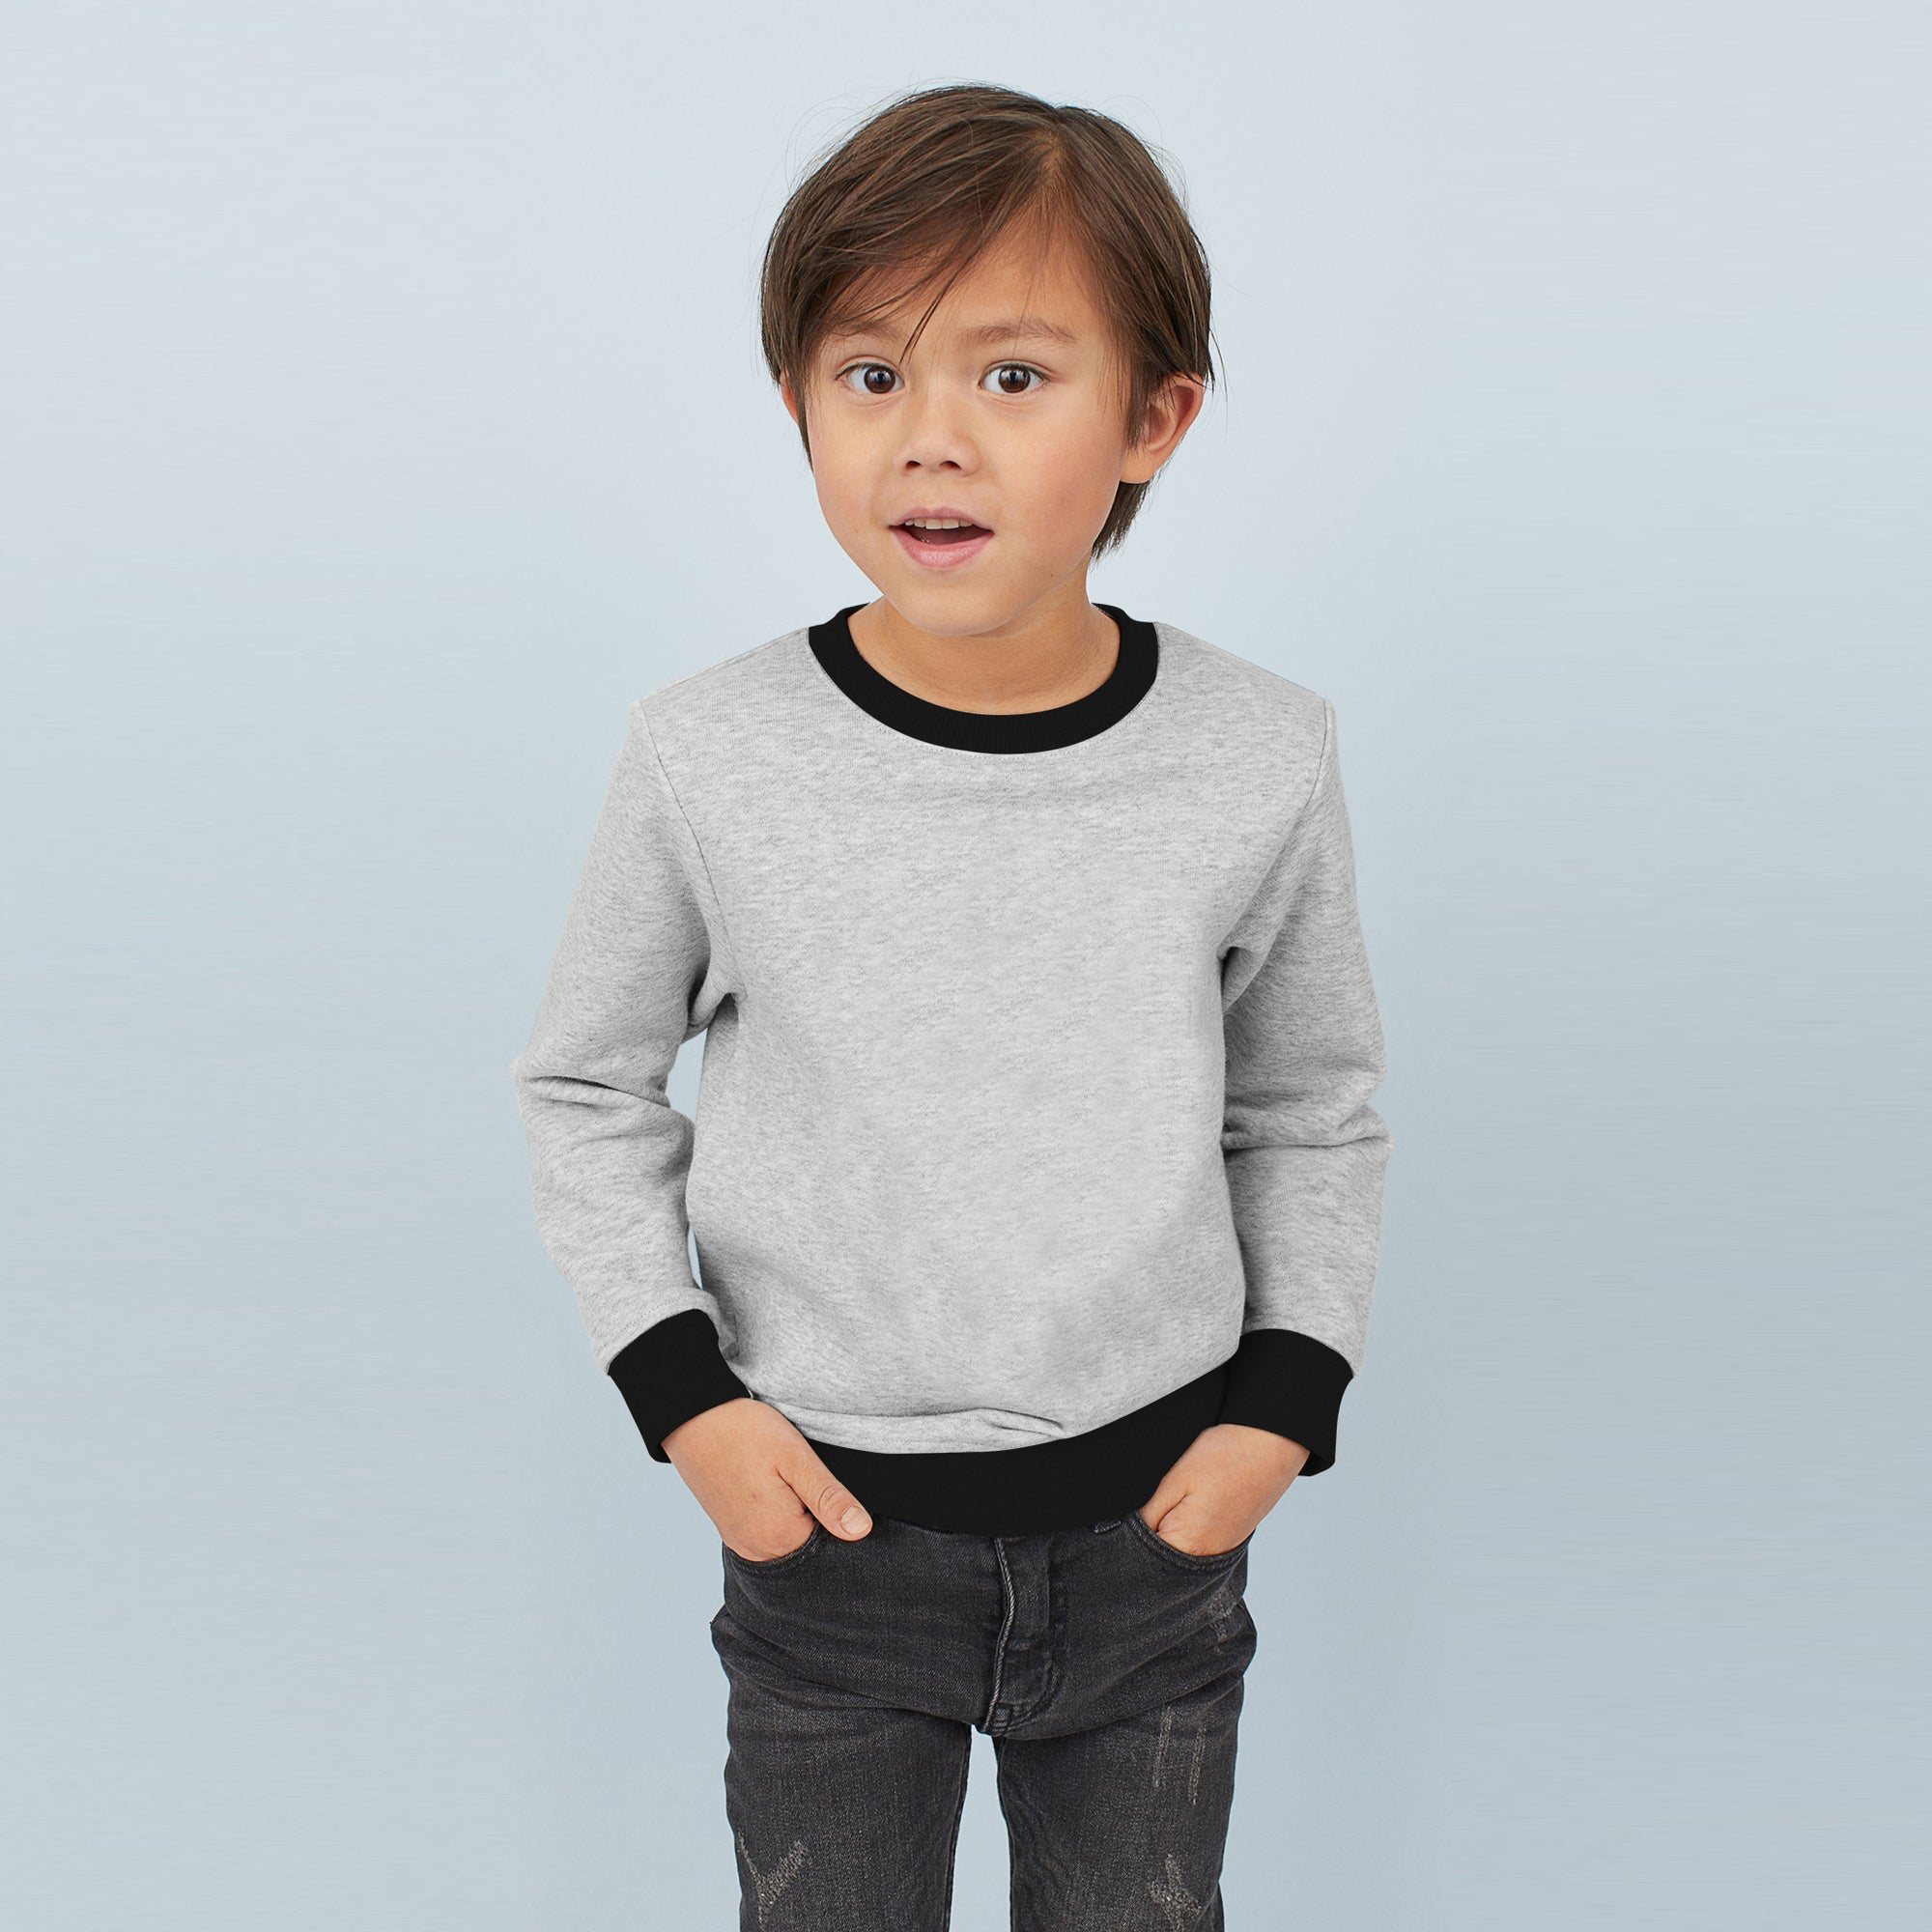 Tommy Hilfiger Crew Neck Fleece Sweatshirt For Kids-Grey Melange & Black-BE7854